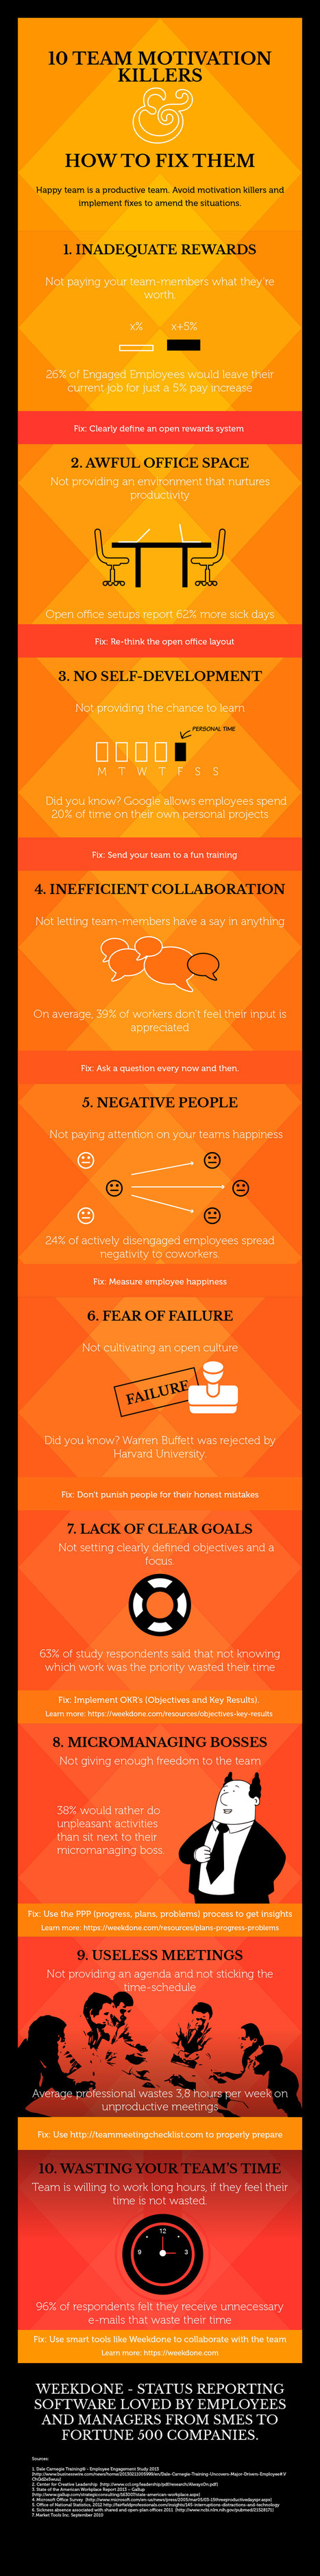 10 Motivation Killers and How to Fix Them (Infographic) | InfoGraphicPlanet | Scoop.it